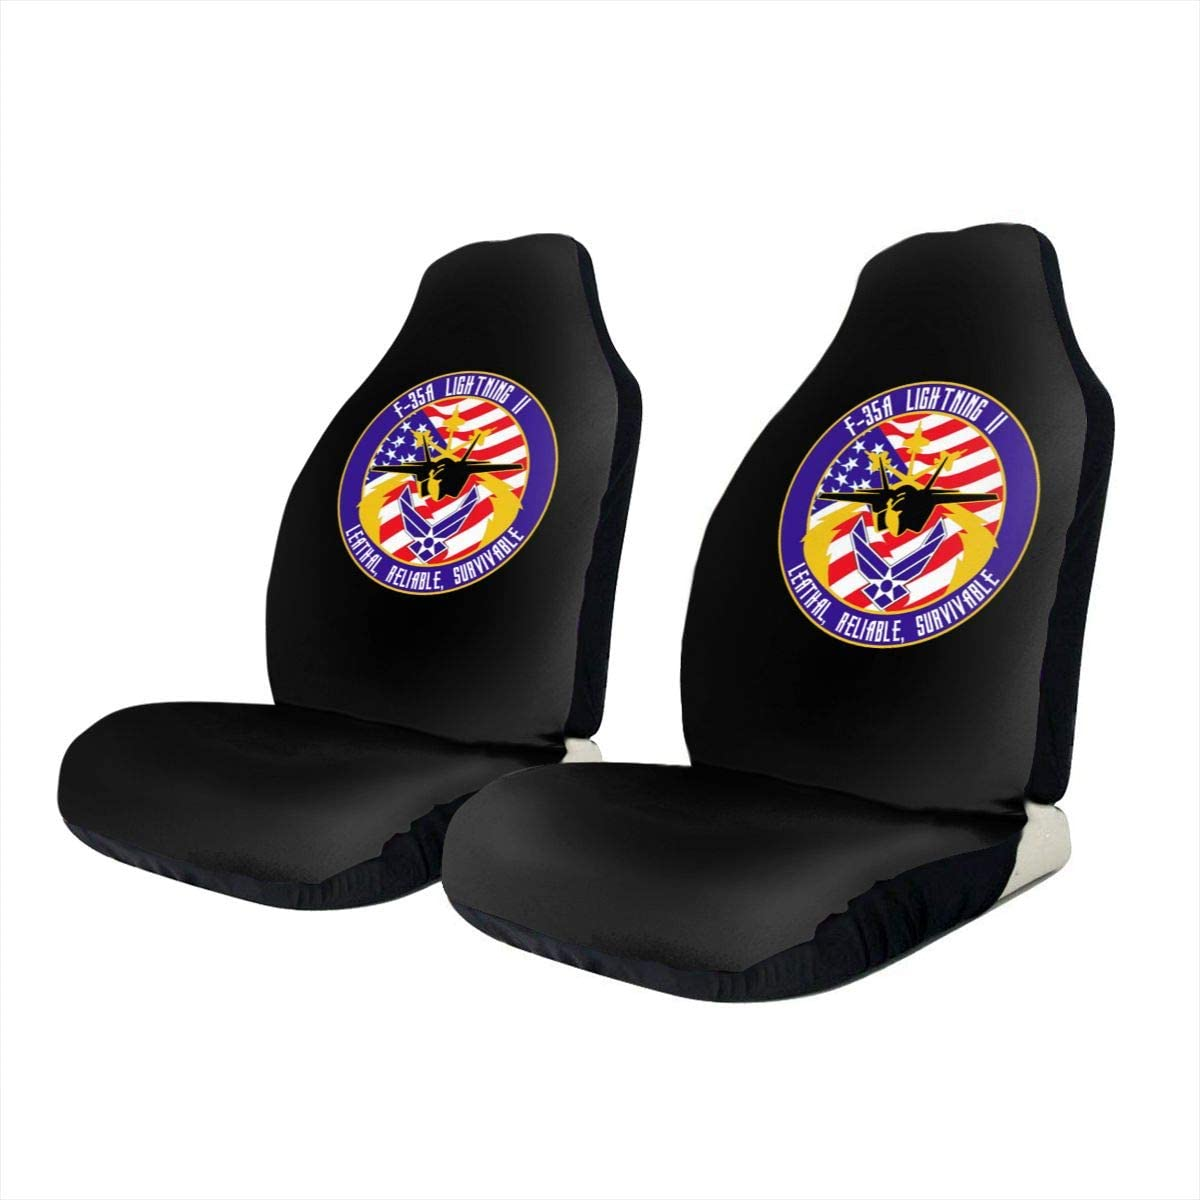 KEEDCE&FJE USAF F-35A Flight Insignia Universal Car Seat Cover Car Seat Covers Protector for Automobile Truck SUV Vehicle